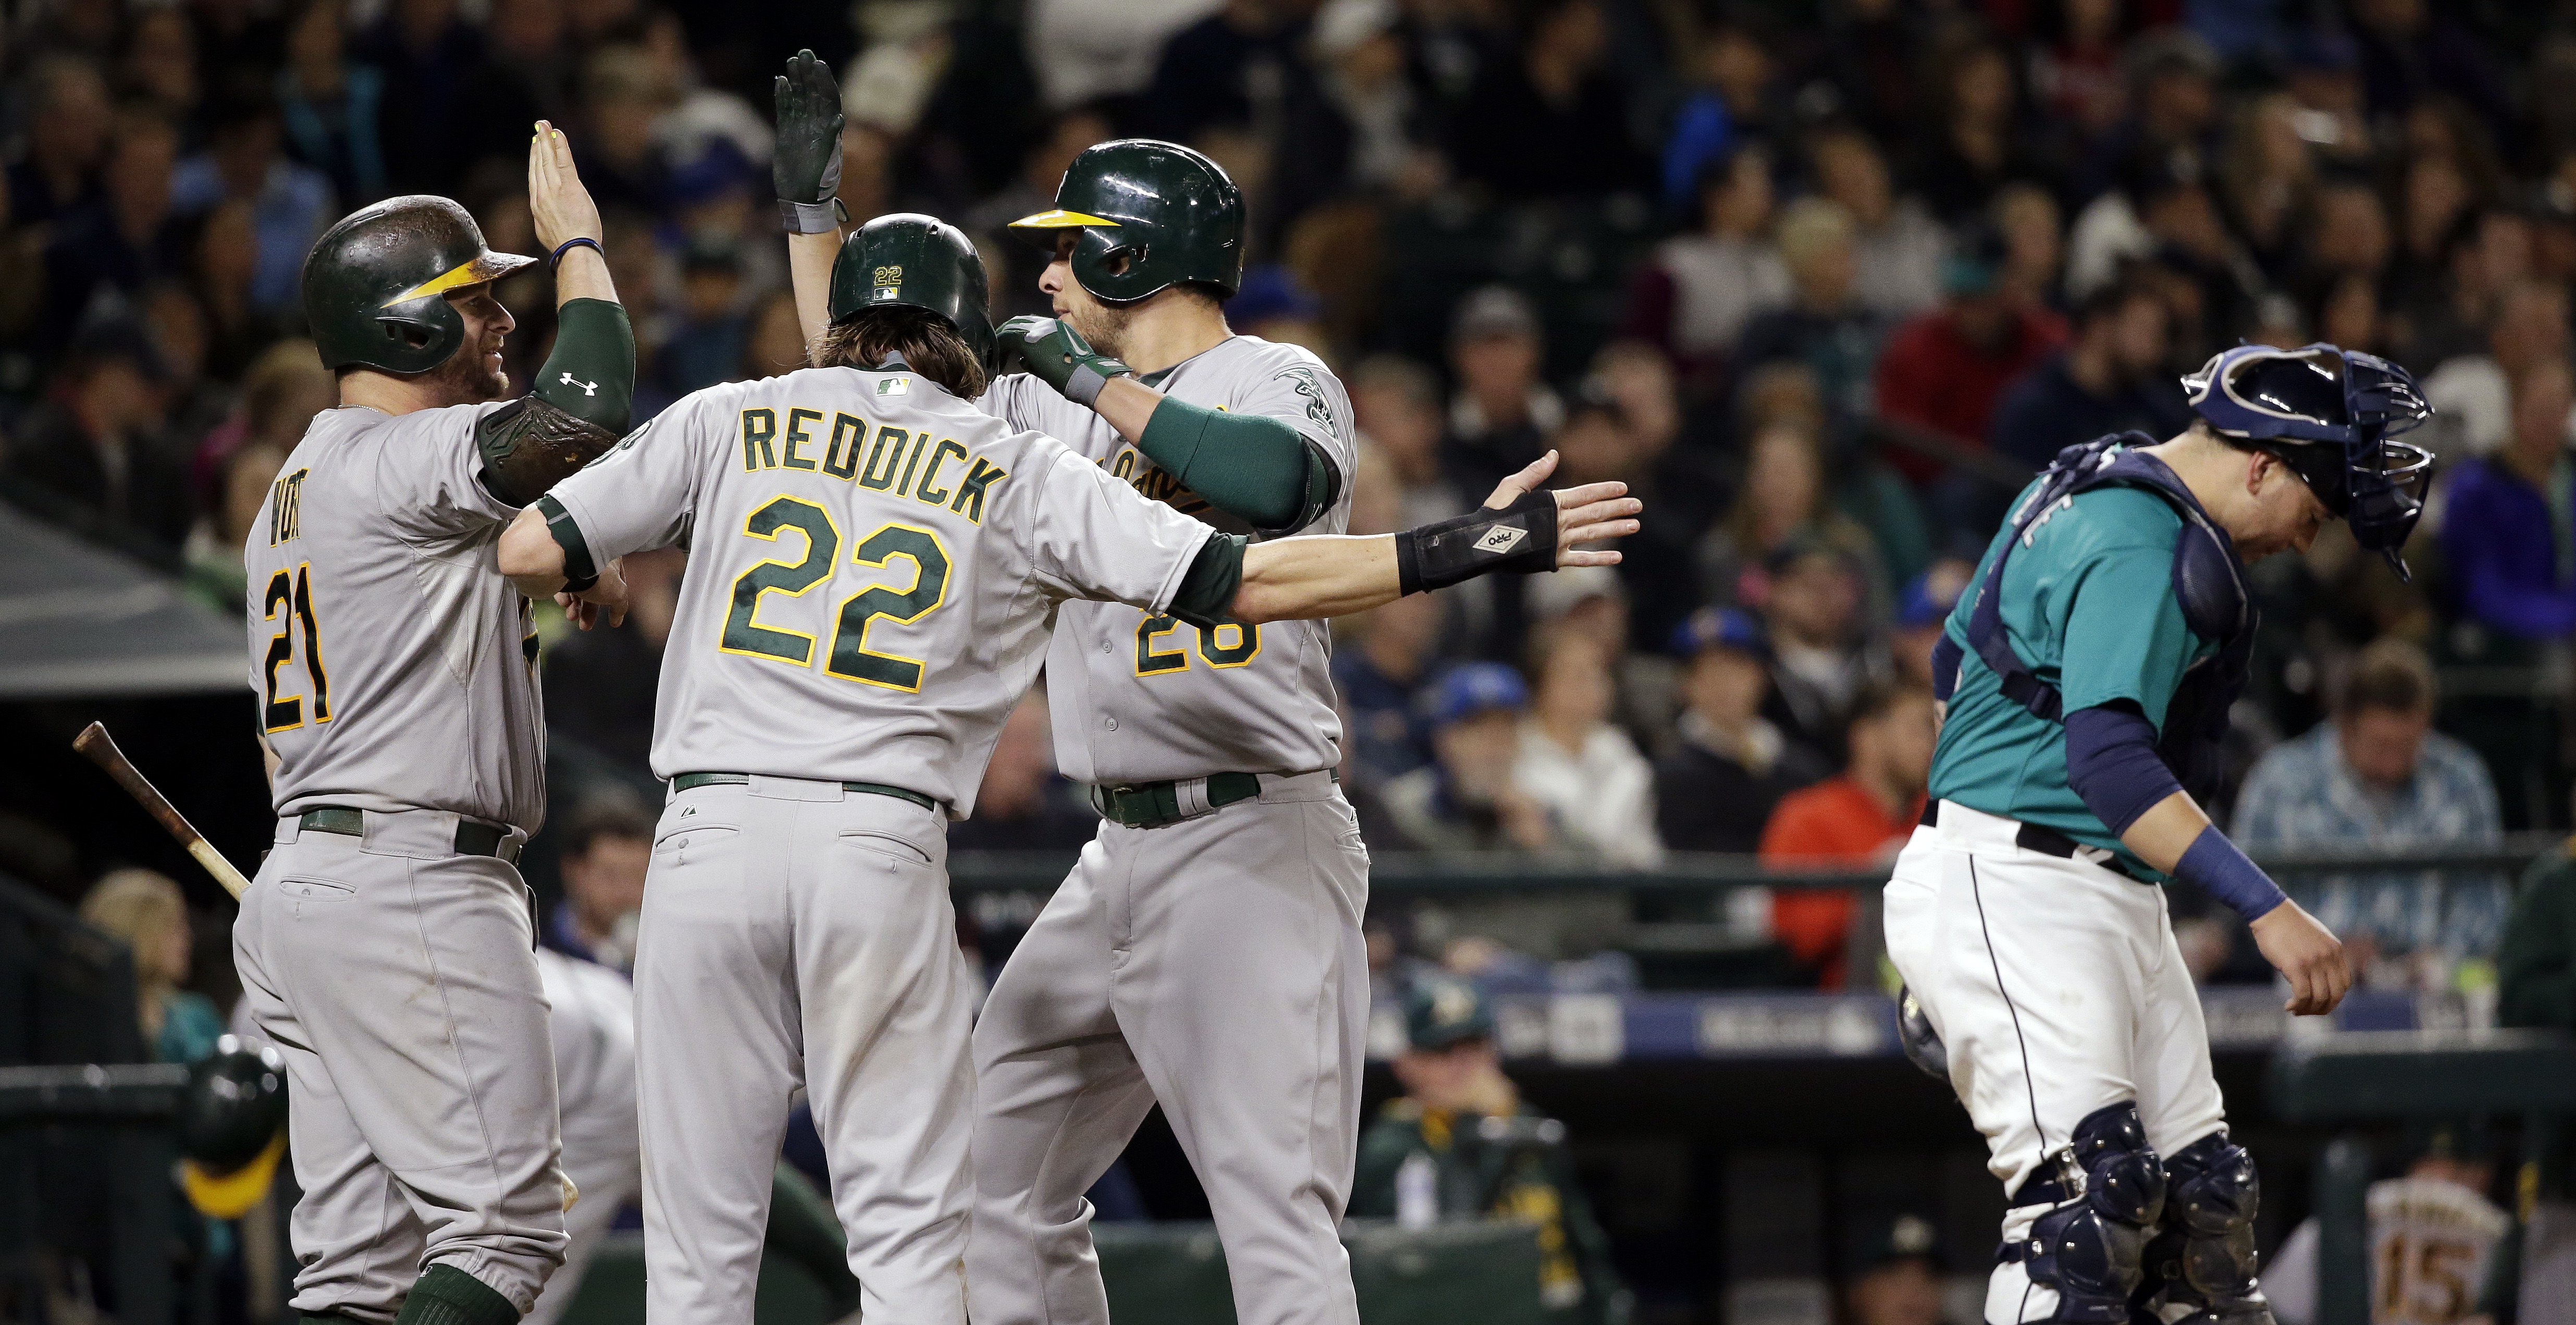 Oakland Athletics' Stephen Vogt (21) and Josh Reddick (22) greet Danny Valencia on his two-run home run as Seattle Mariners catcher Jesus Sucre waits for the next batter in the eighth inning of a baseball game Friday, Oct. 2, 2015, in Seattle. (AP Photo/E